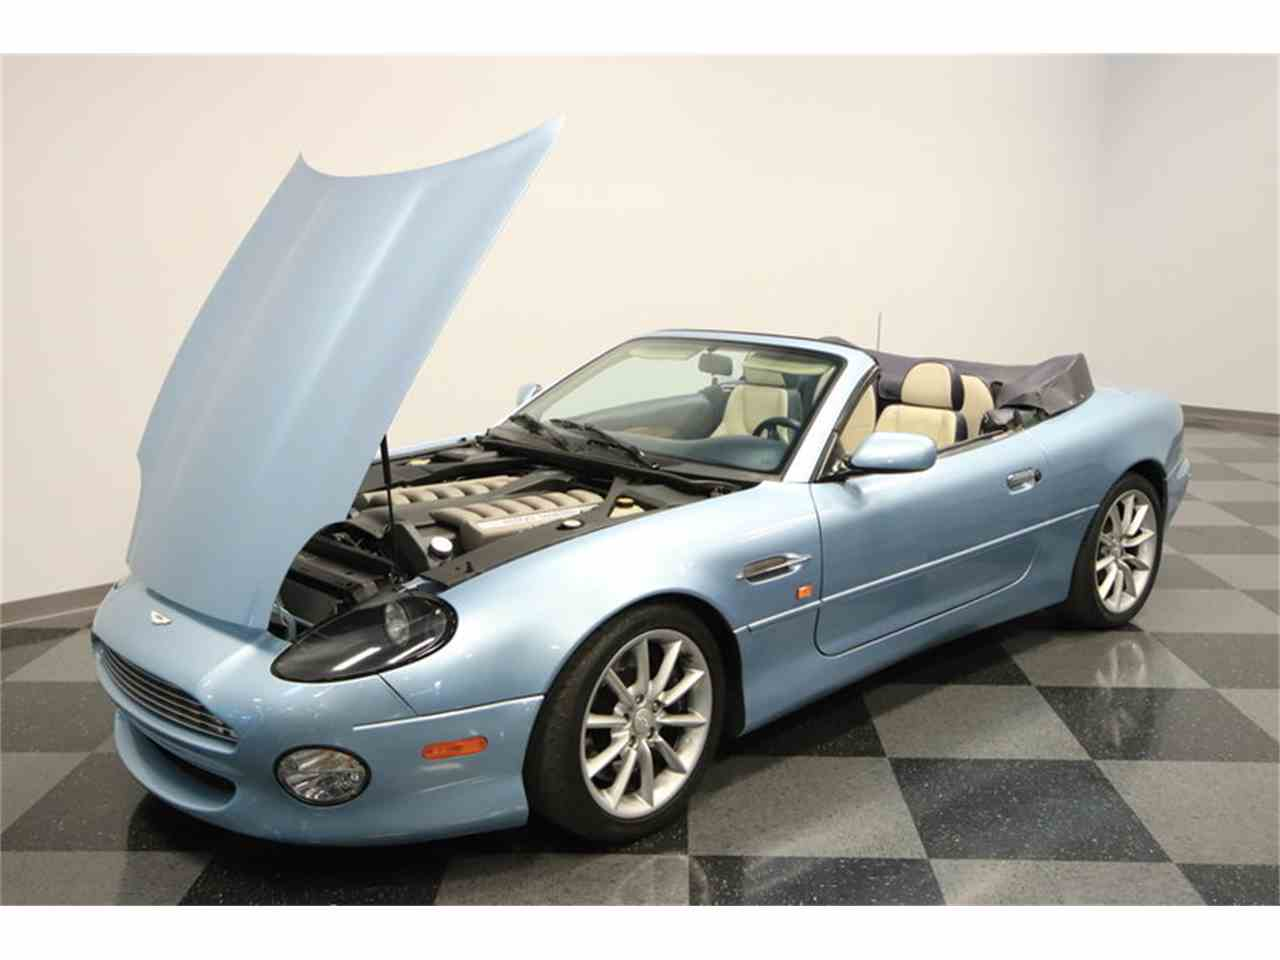 Large Picture of '00 DB7 Vantage Volante located in Arizona - $39,995.00 Offered by Streetside Classics - Phoenix - M73B